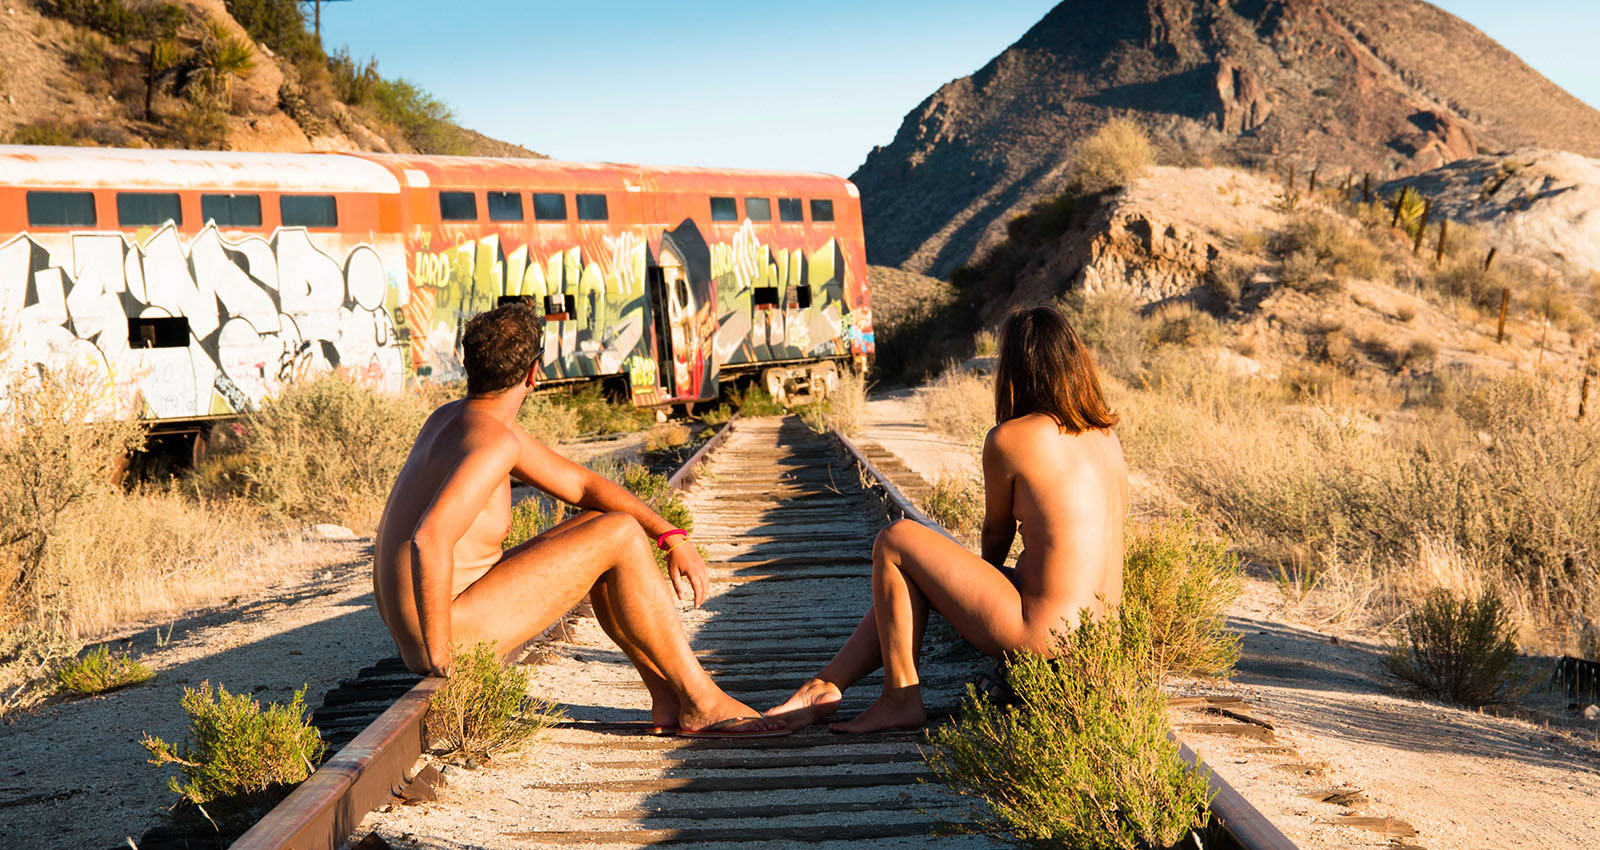 The Geographics and Demographics of Naturism